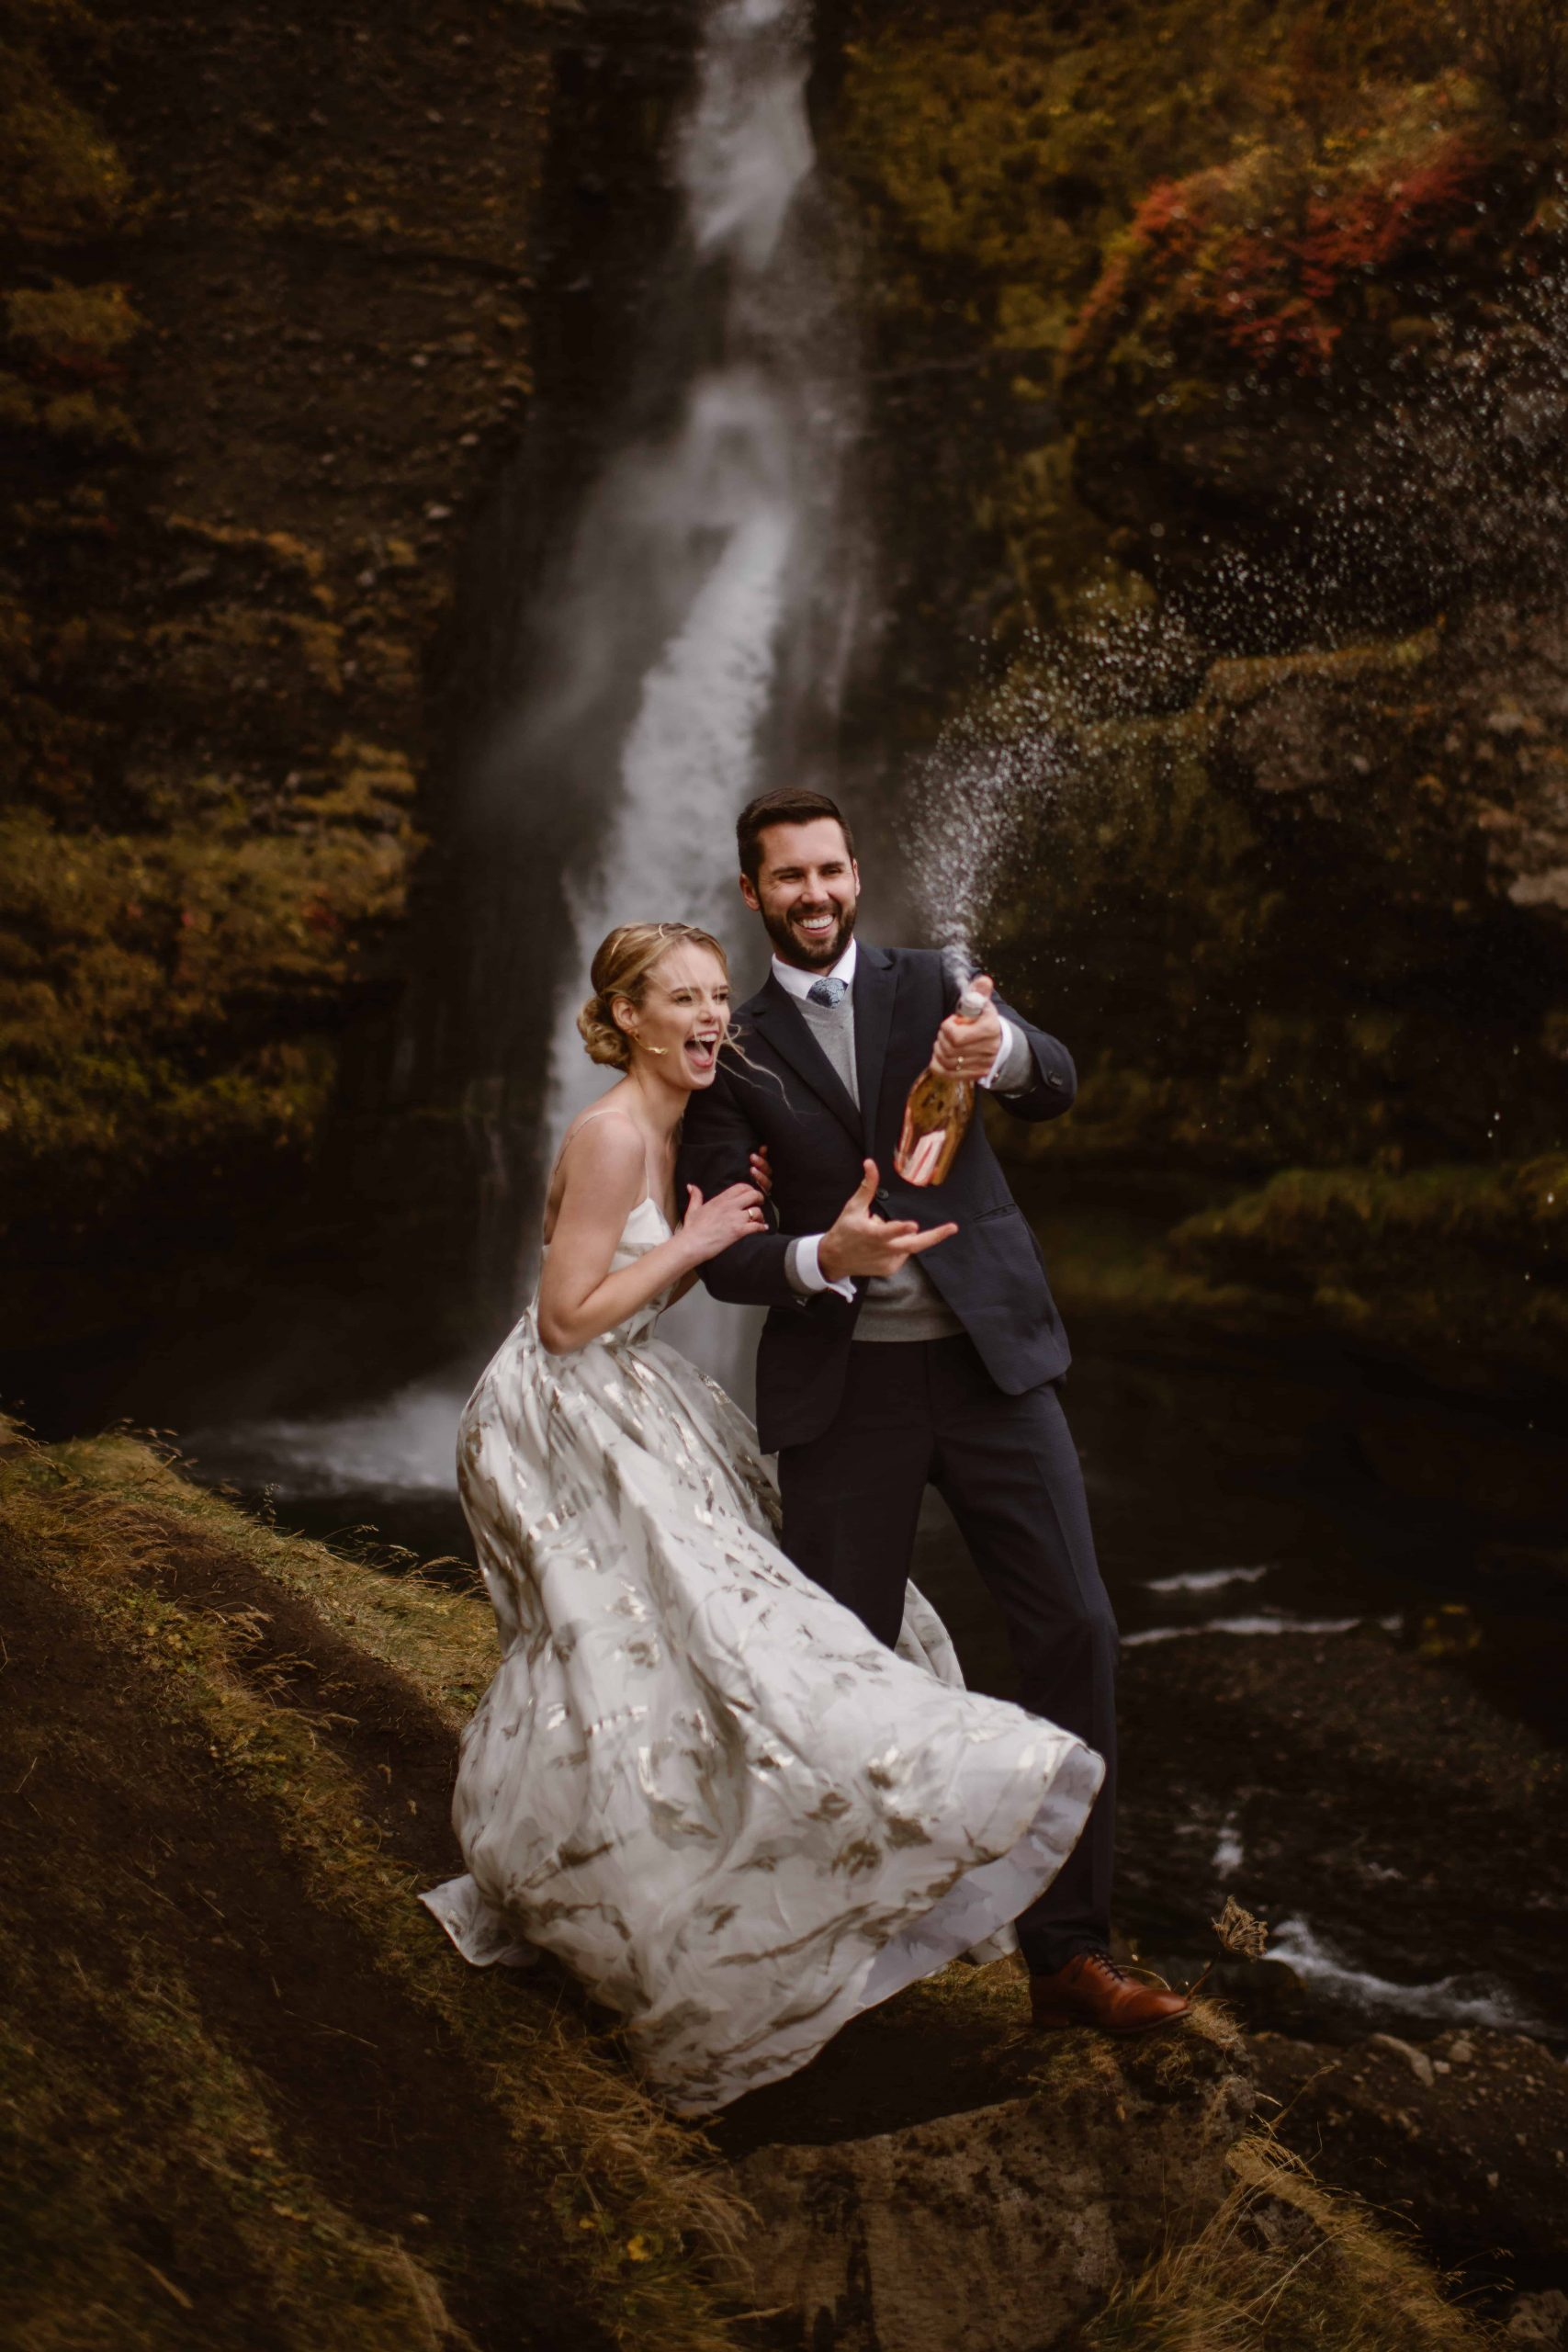 A wedding couple is popping a bottle of champaign open.